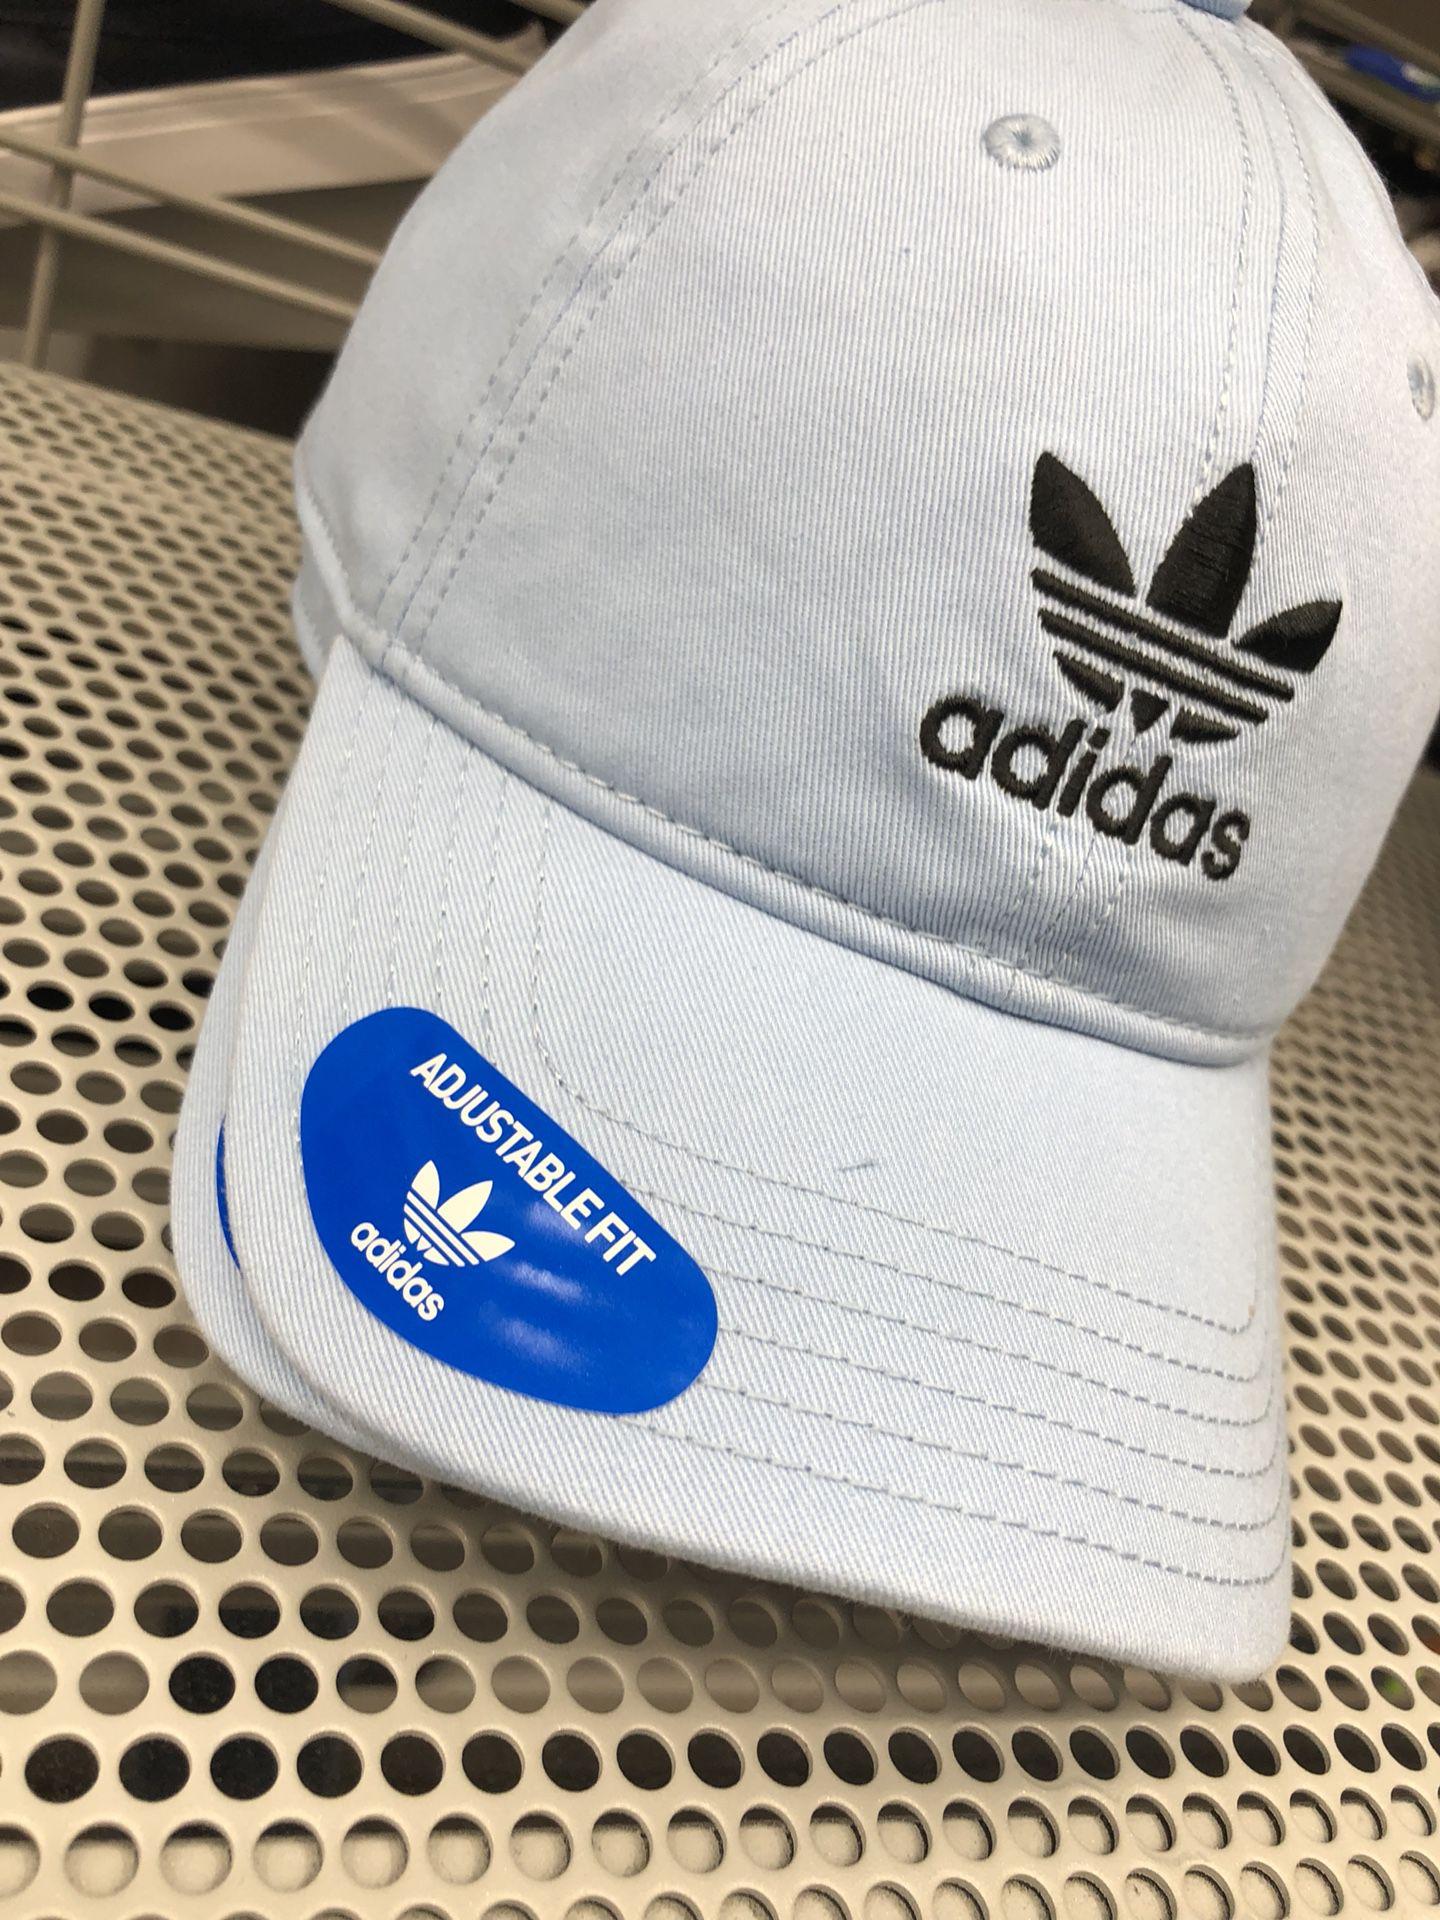 Adidas caps! One size fits all!